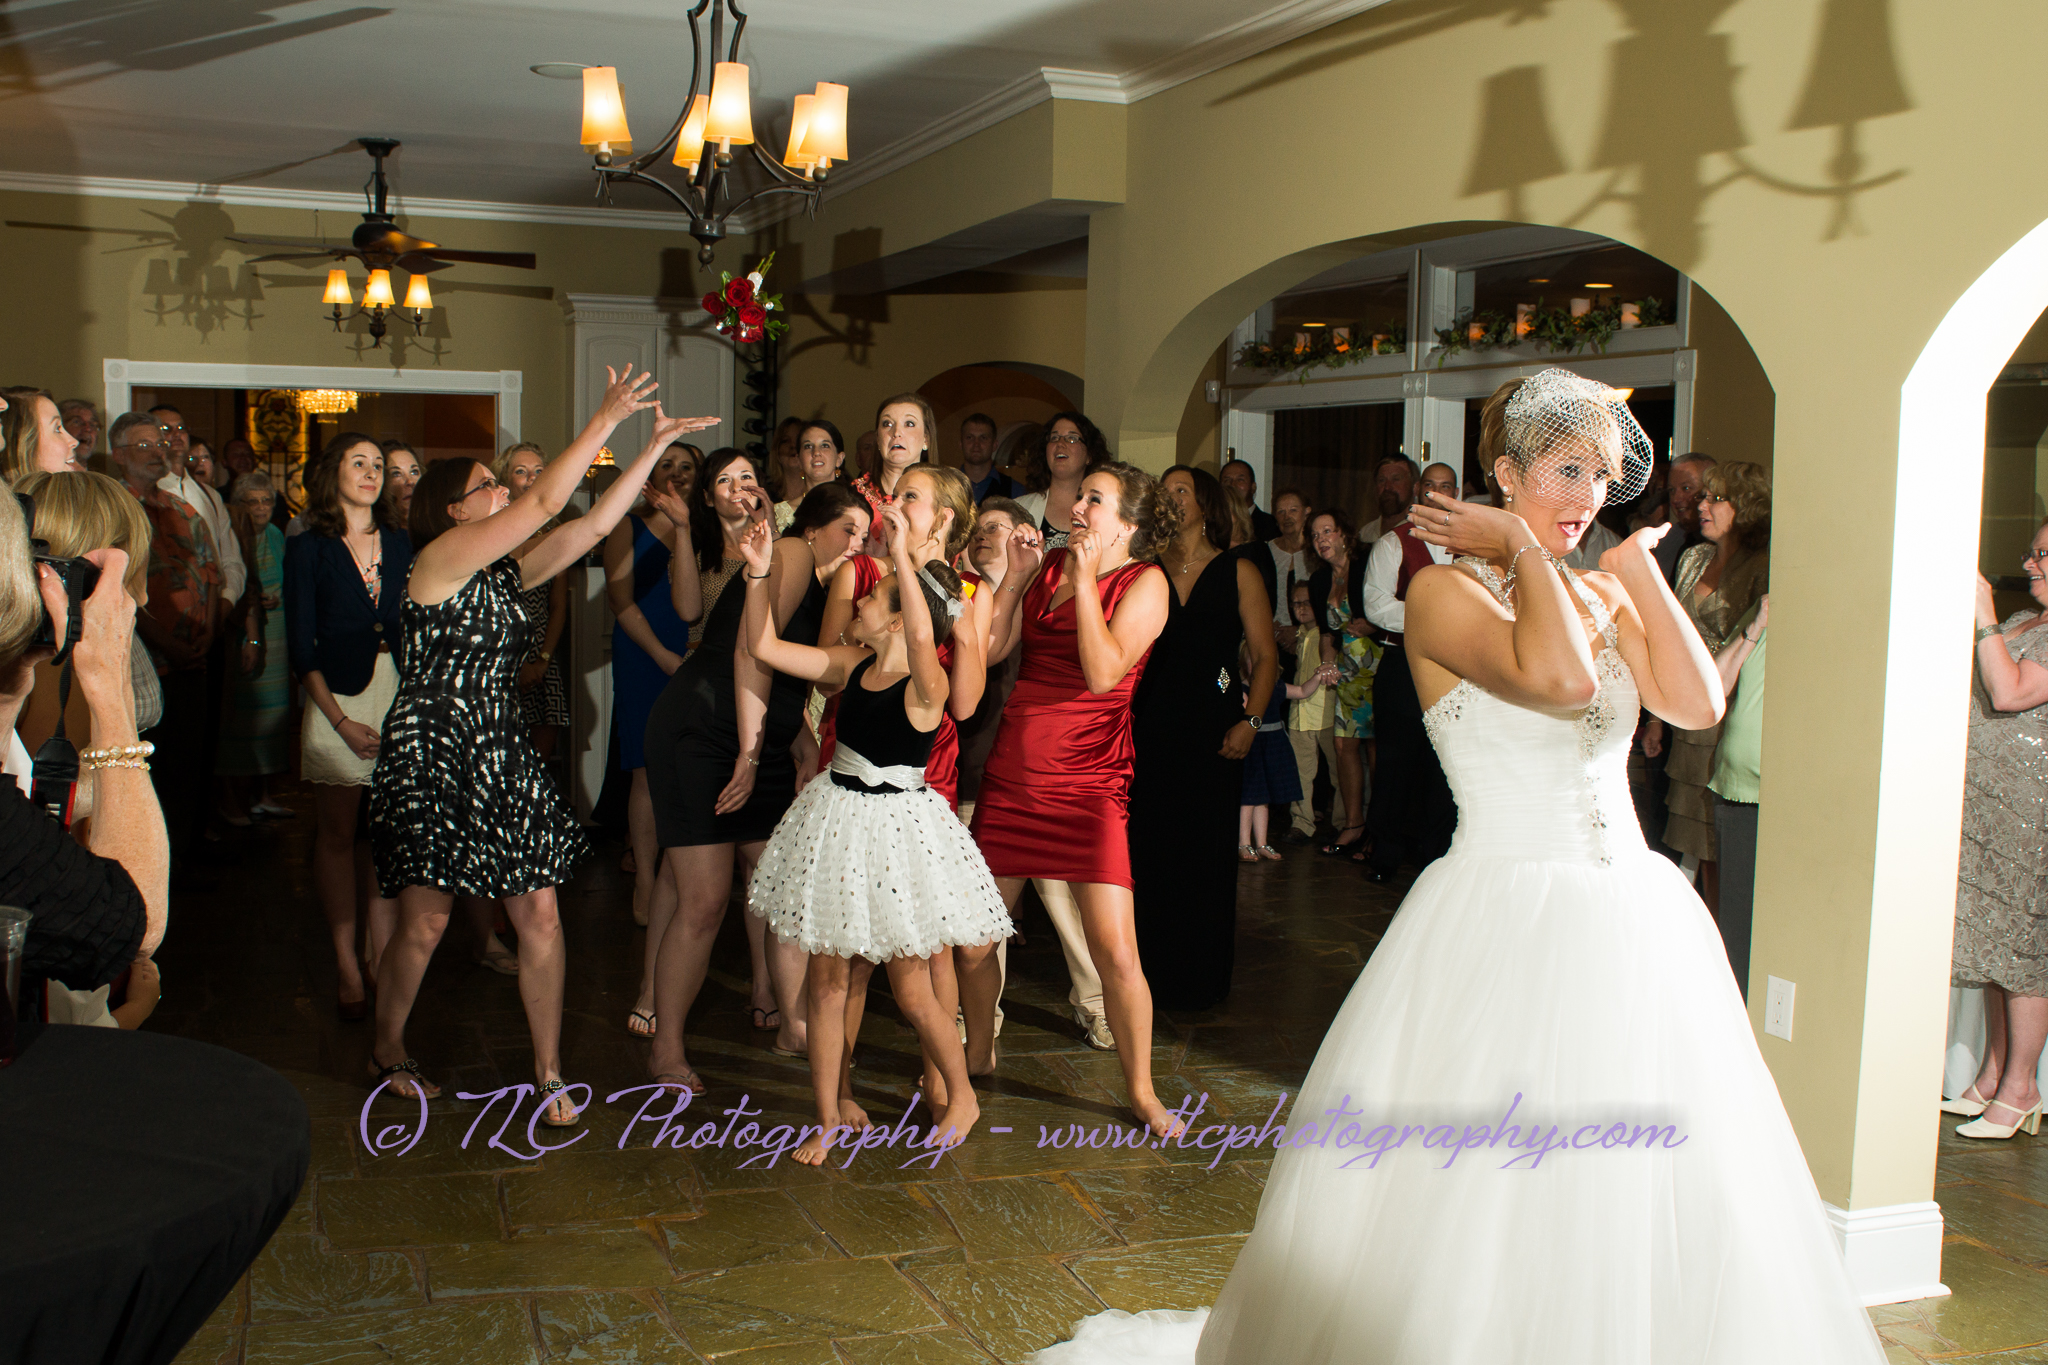 Bouquet toss at the wedding